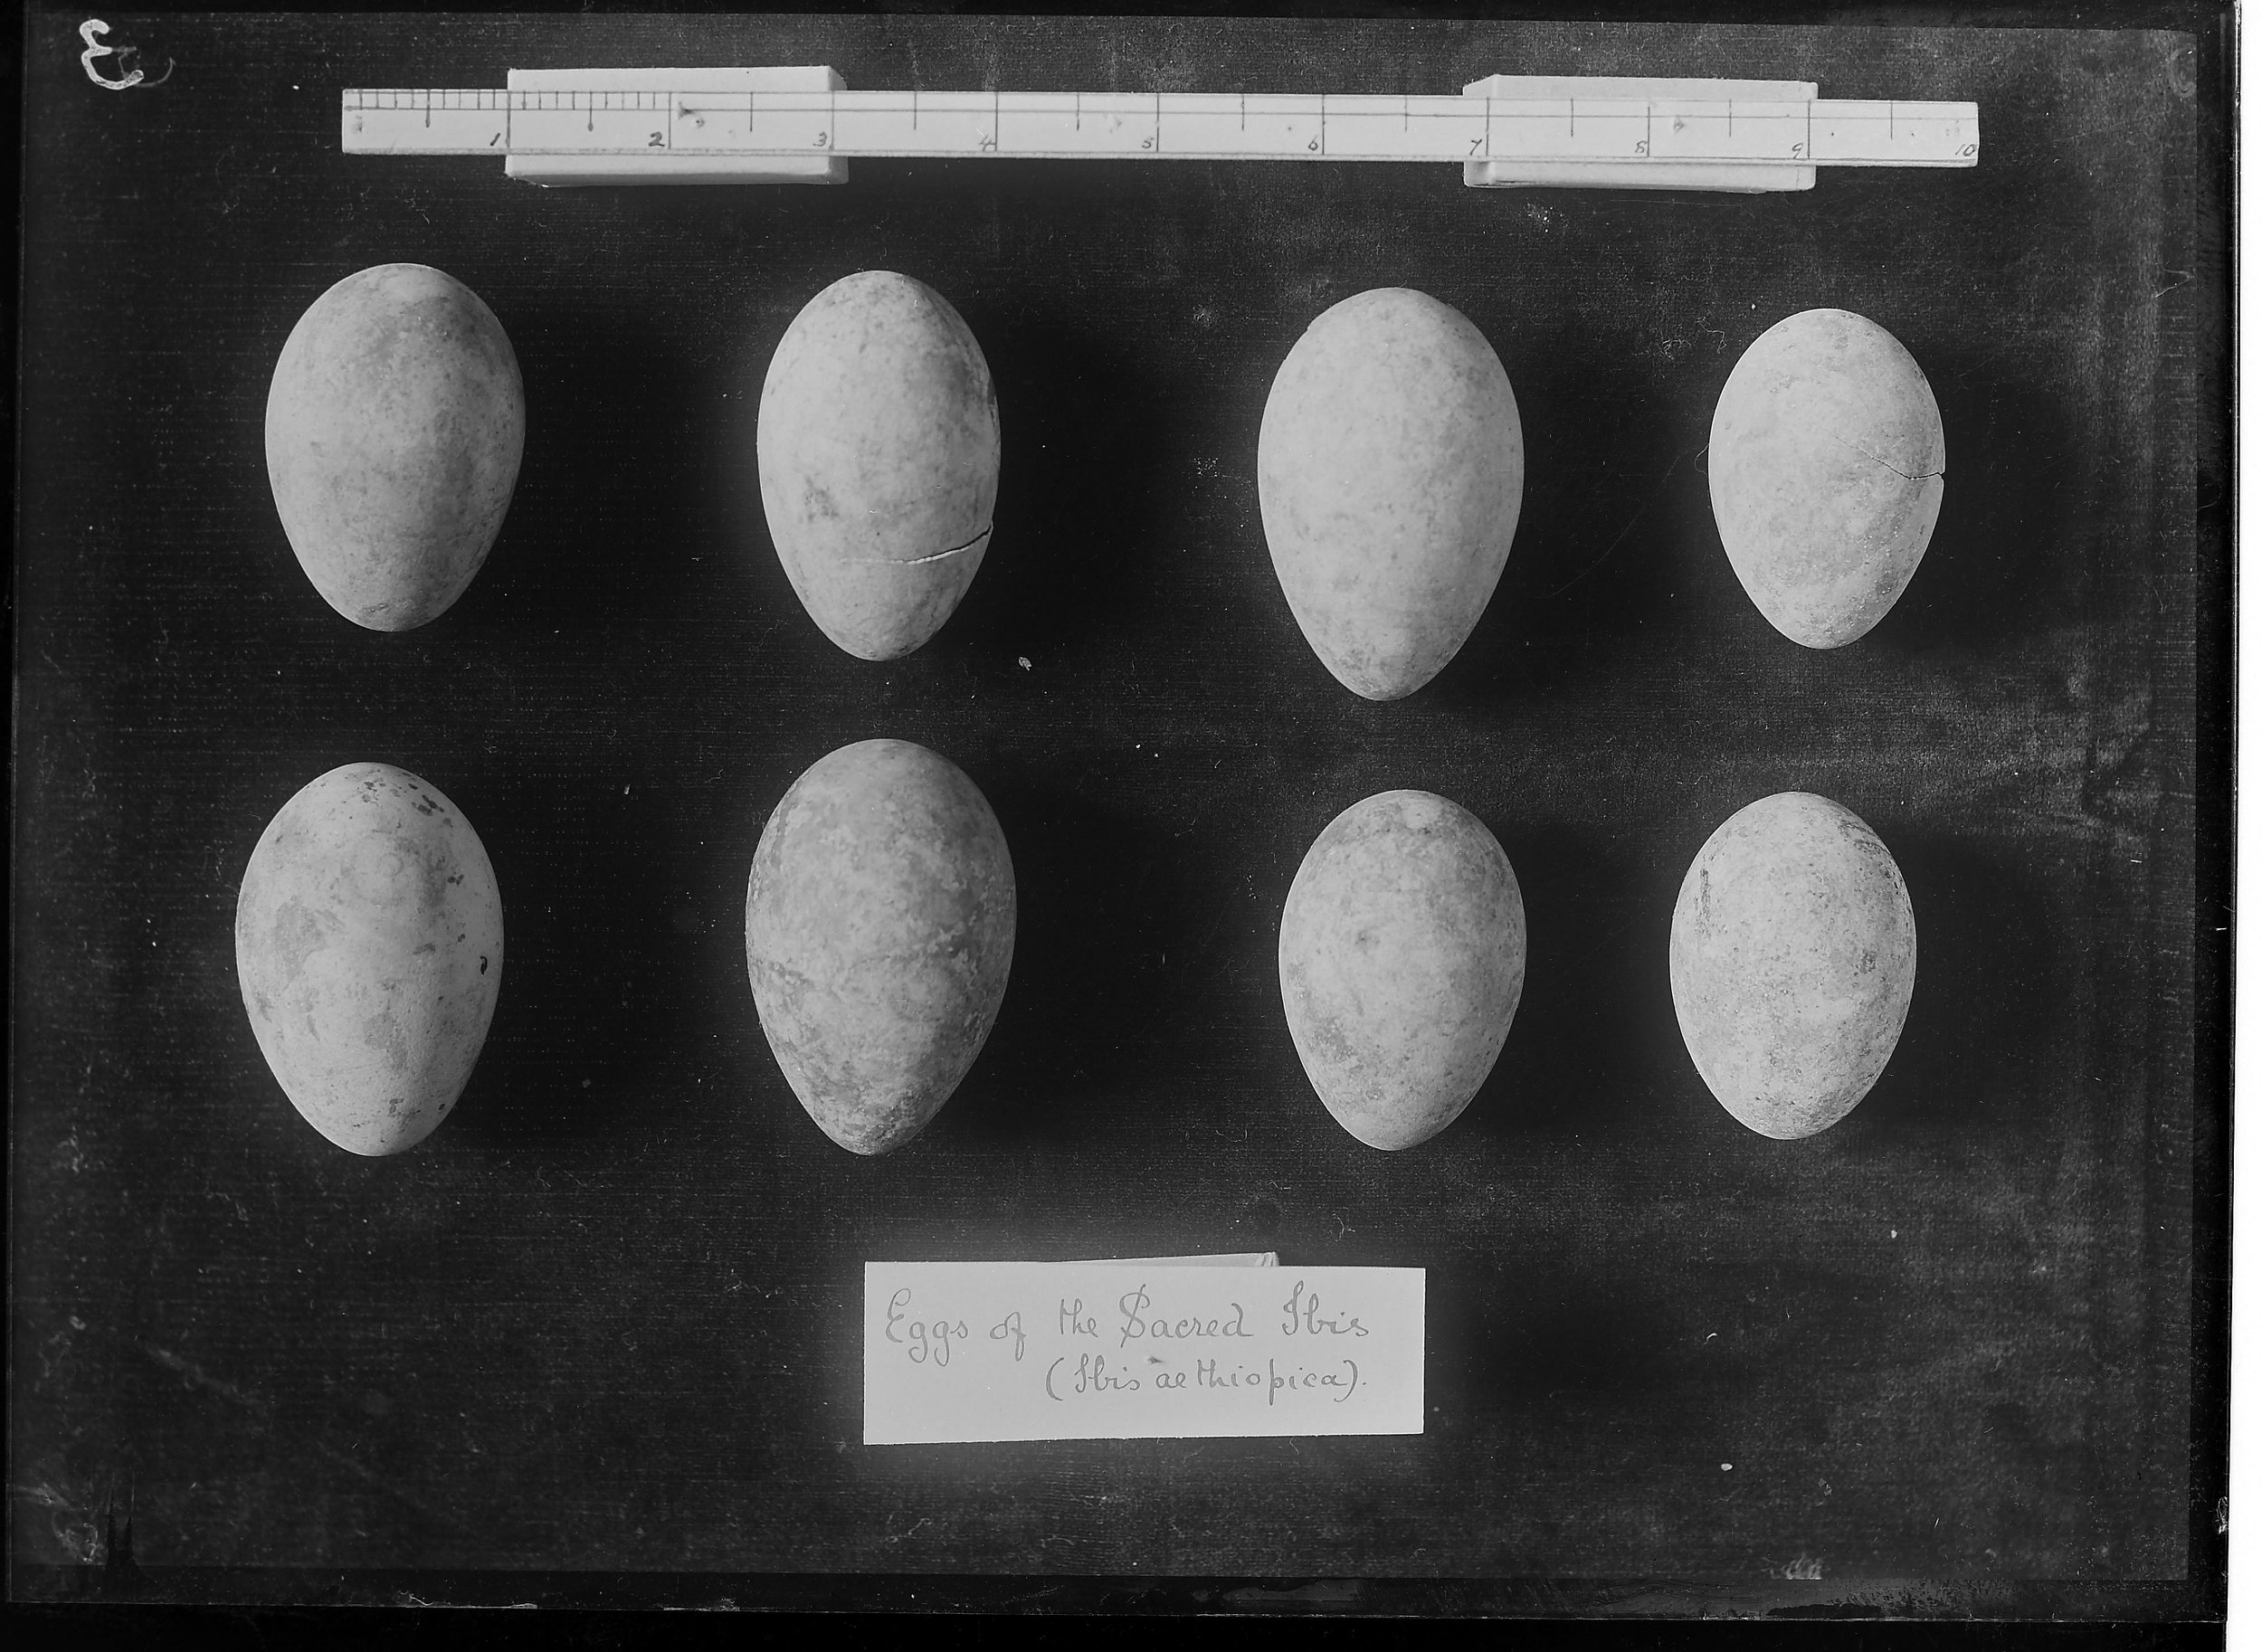 Fig. 6. Examples of excavated ibis eggs from W.L.S. Loat's excavations in the early 20th Century. Photo courtesy of the  Egypt Exploration Society